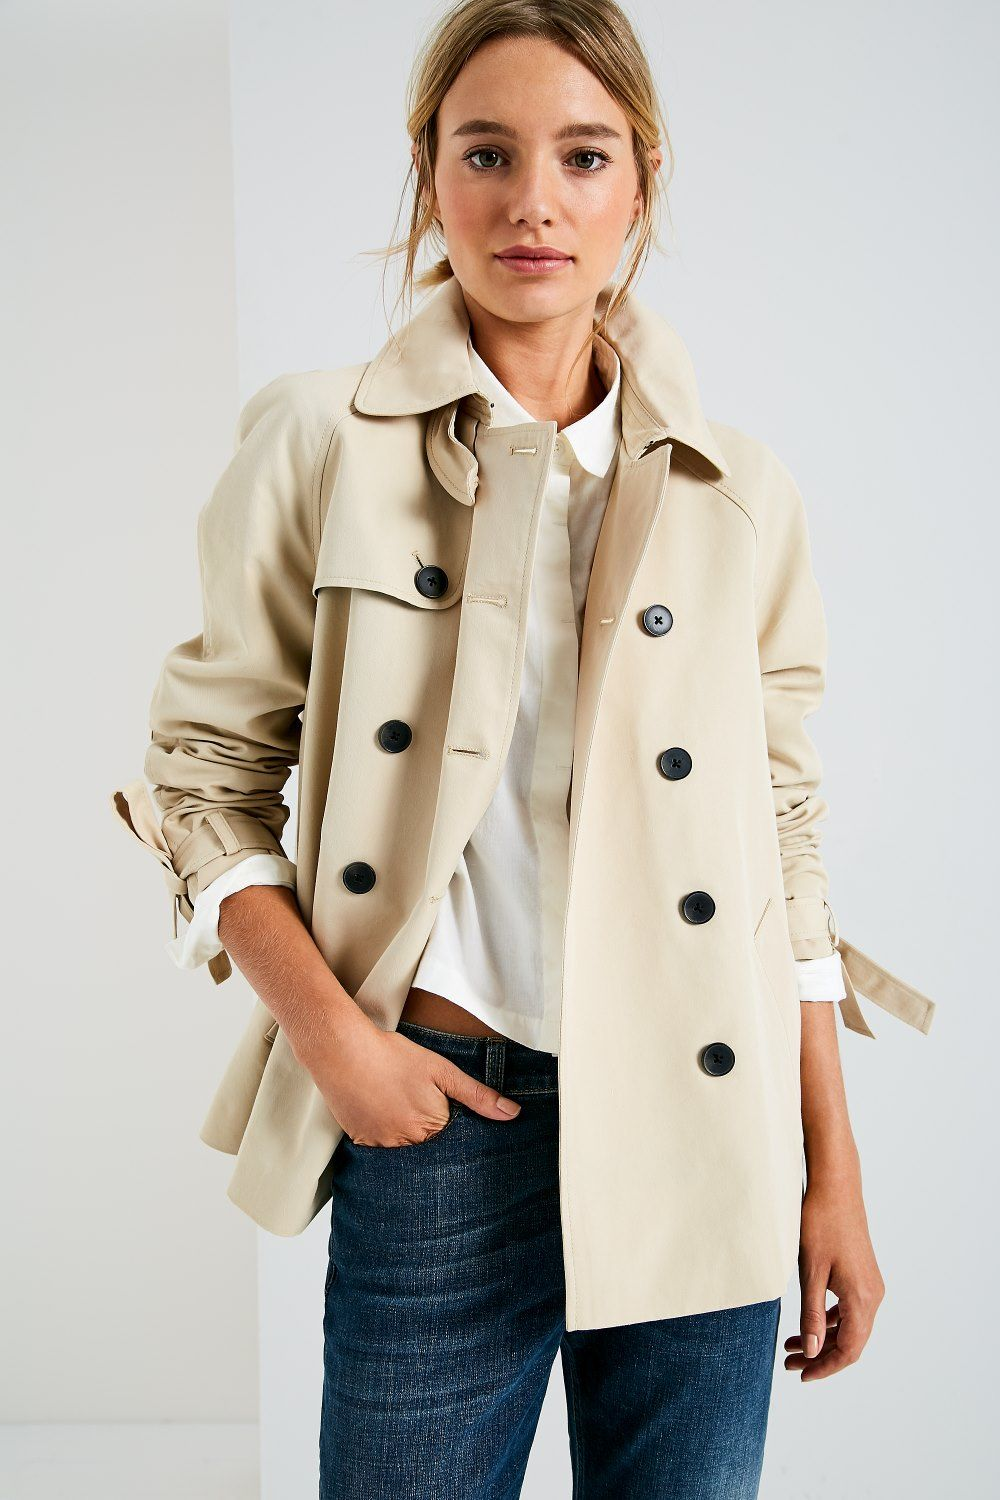 The trench coat is a statement staple that belongs in every wardrobe, and here's why.